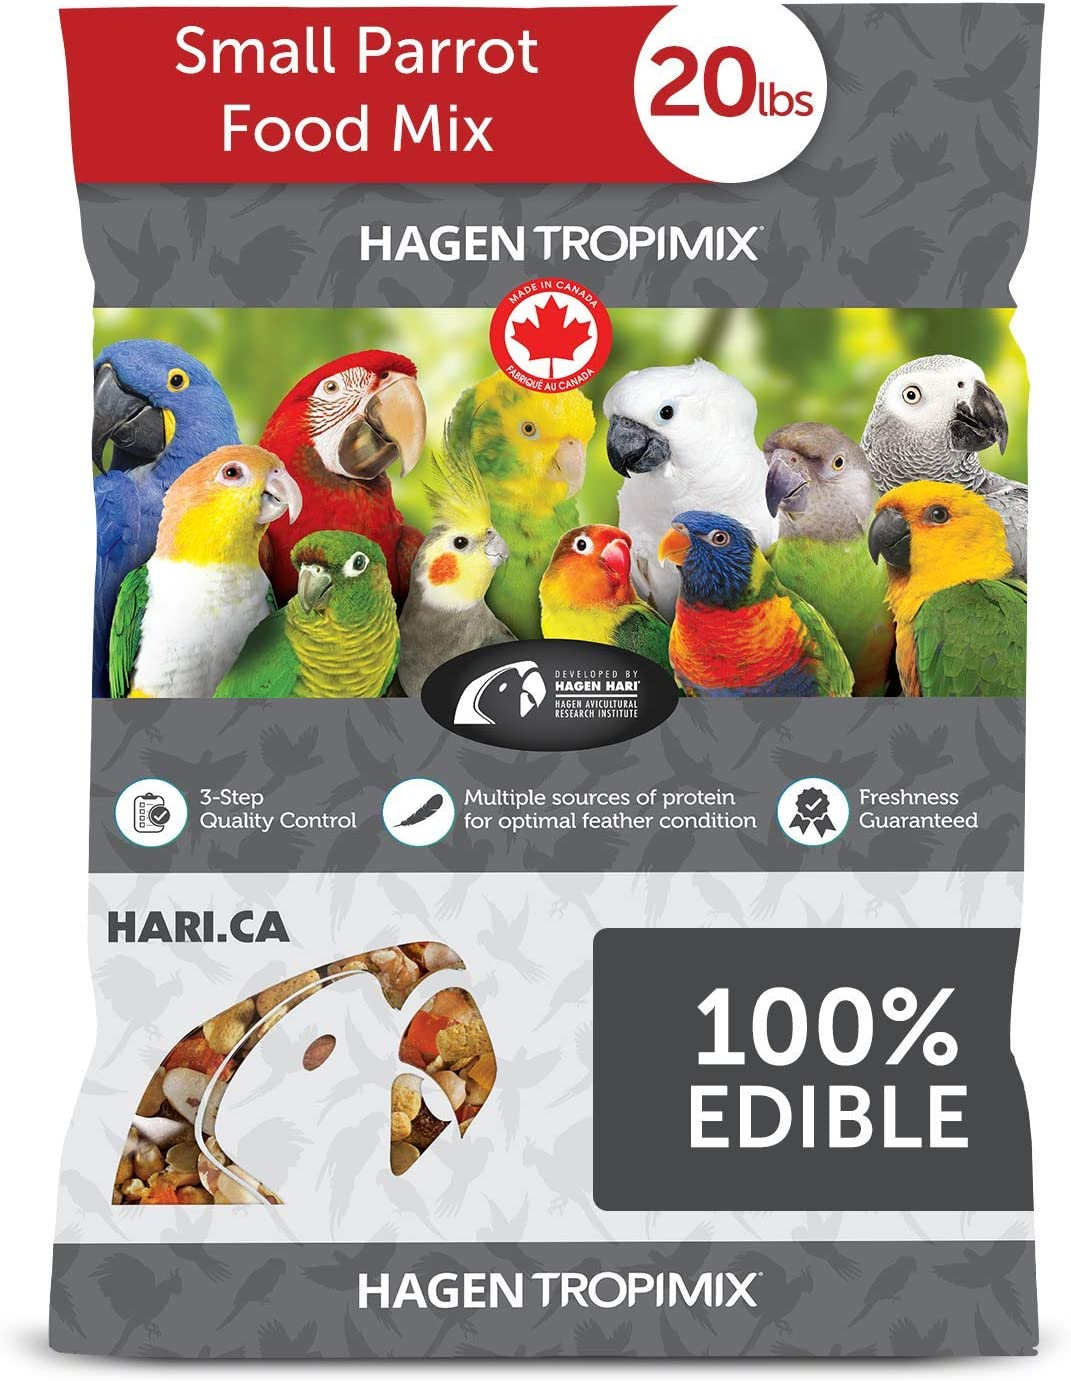 Tropimix Bird Food, Small Parrot Food with Seeds, Fruit, Nuts, Vegetables, Grains, and Legumes, Enrichment Food, 20 lb Bag